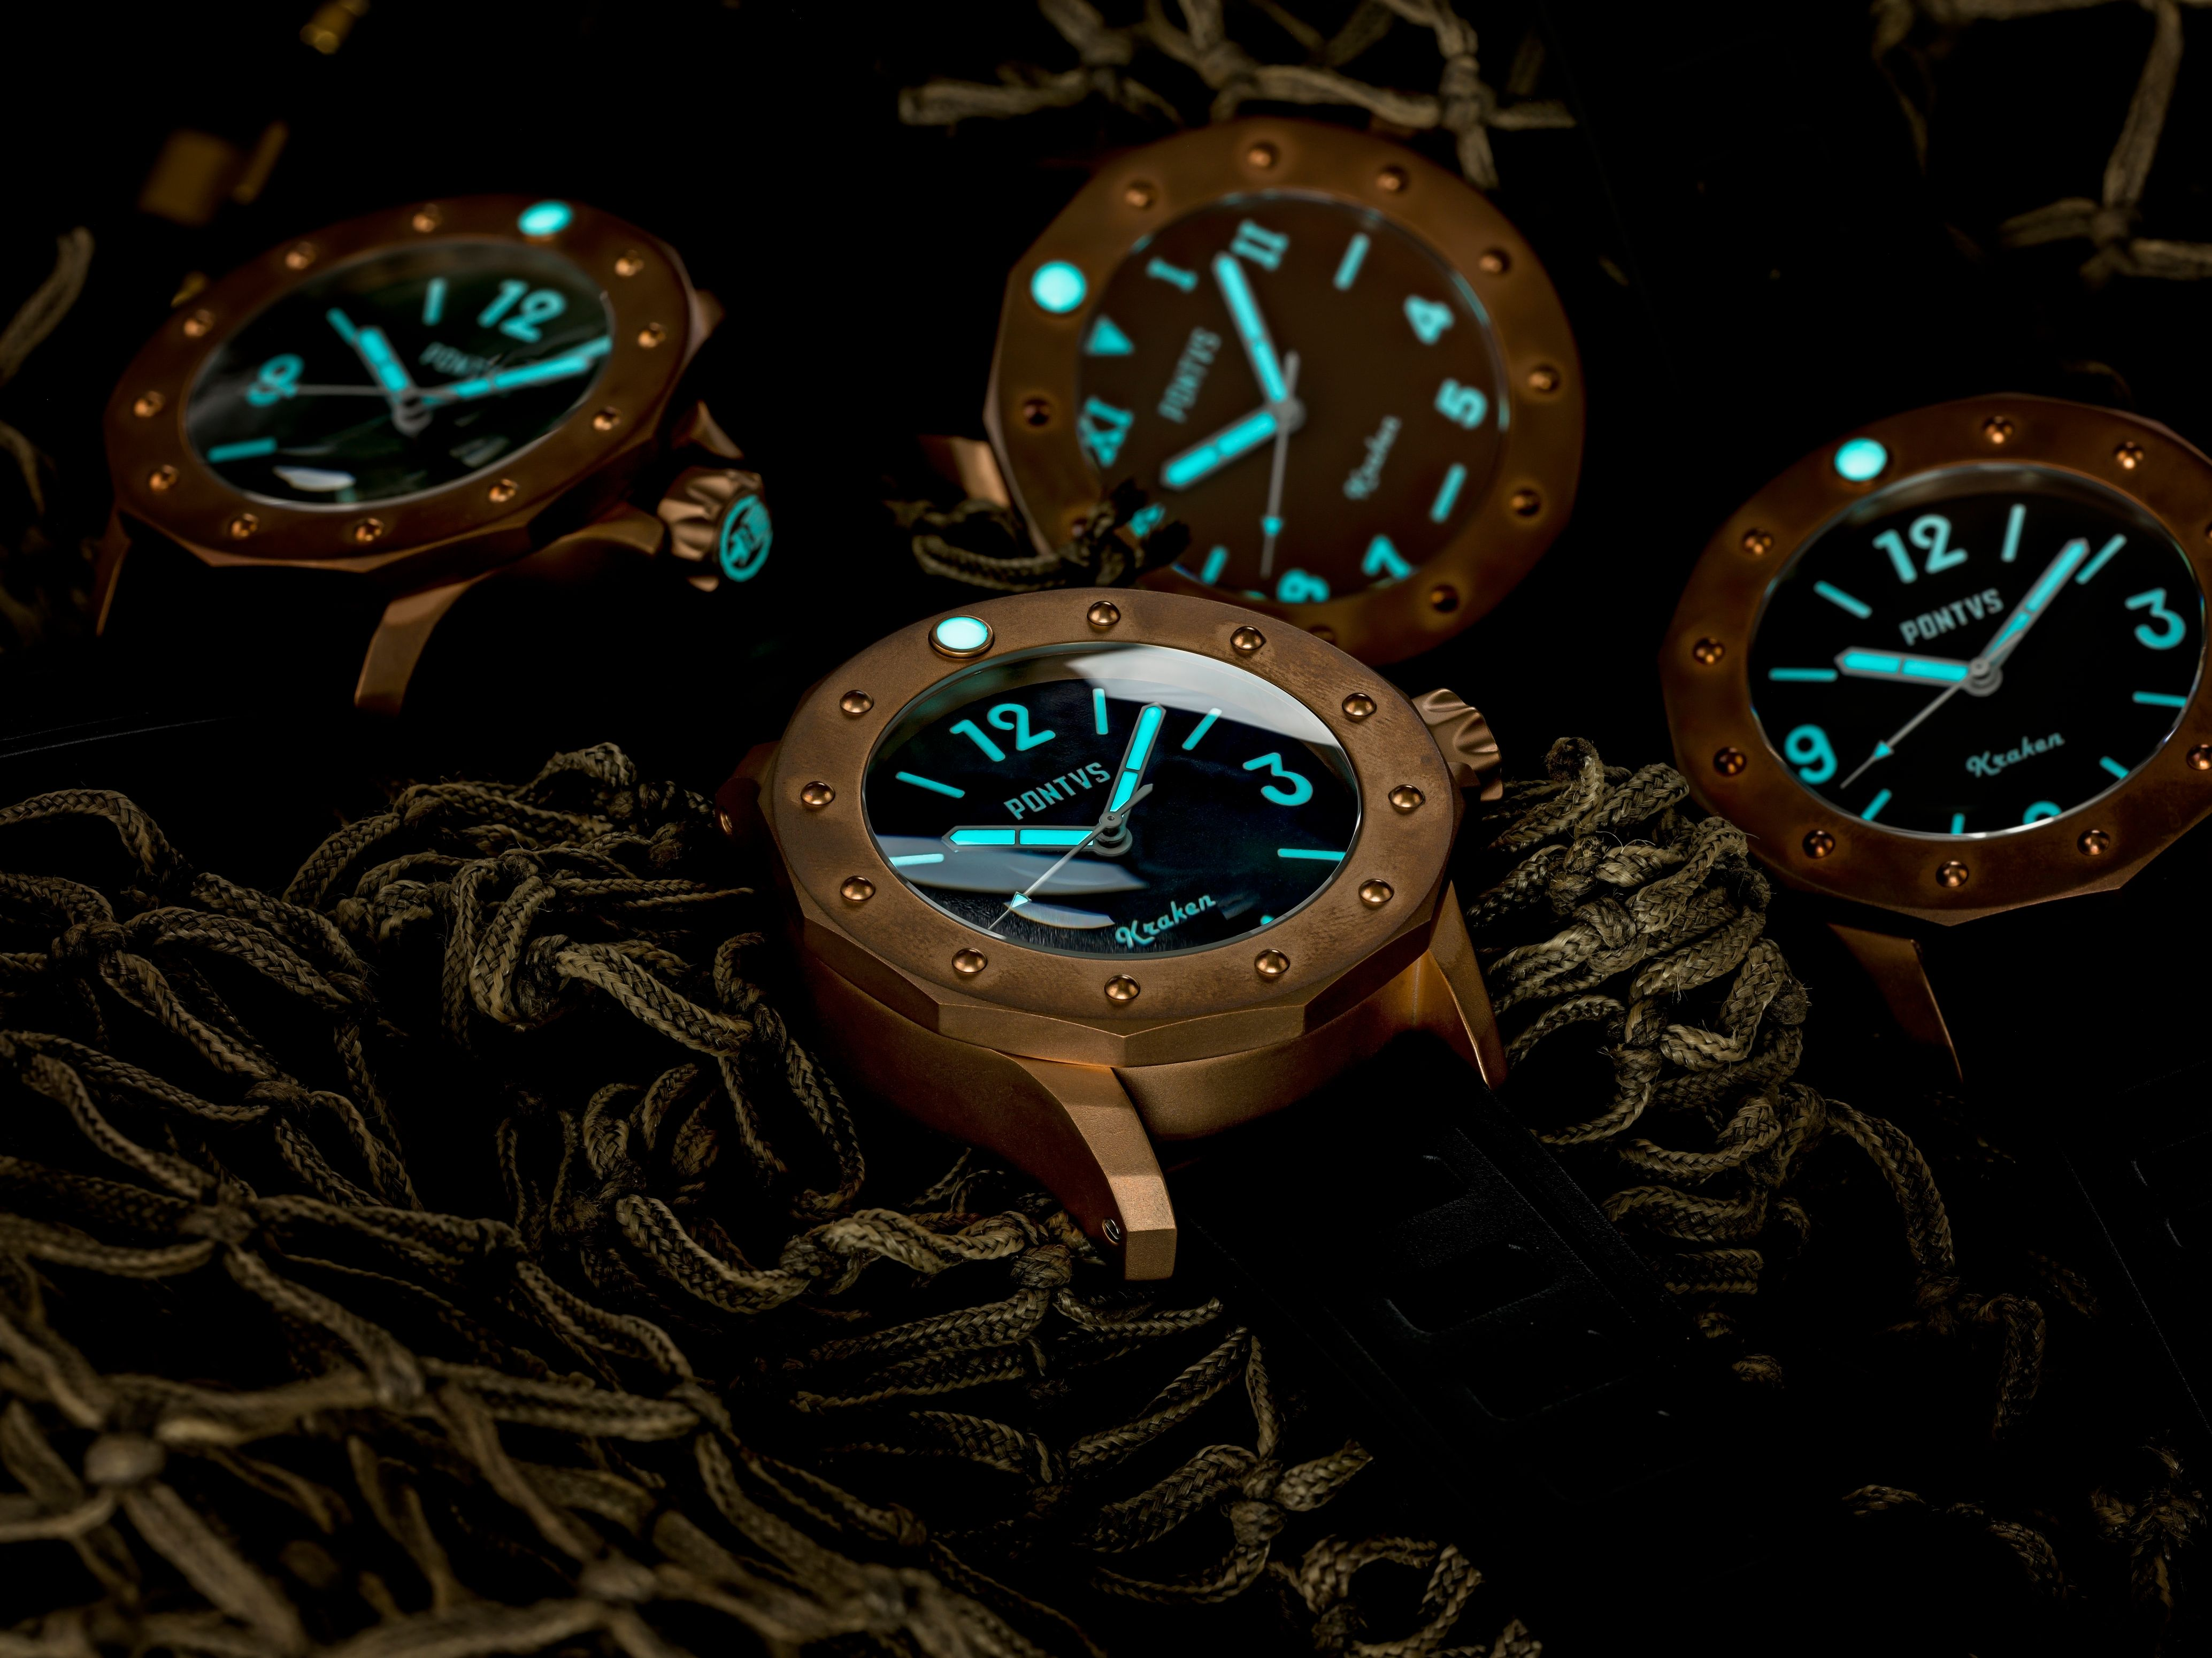 The hour markers and indices on the Pontvs Kraken are all printed with Super-LumiNova BGW9.